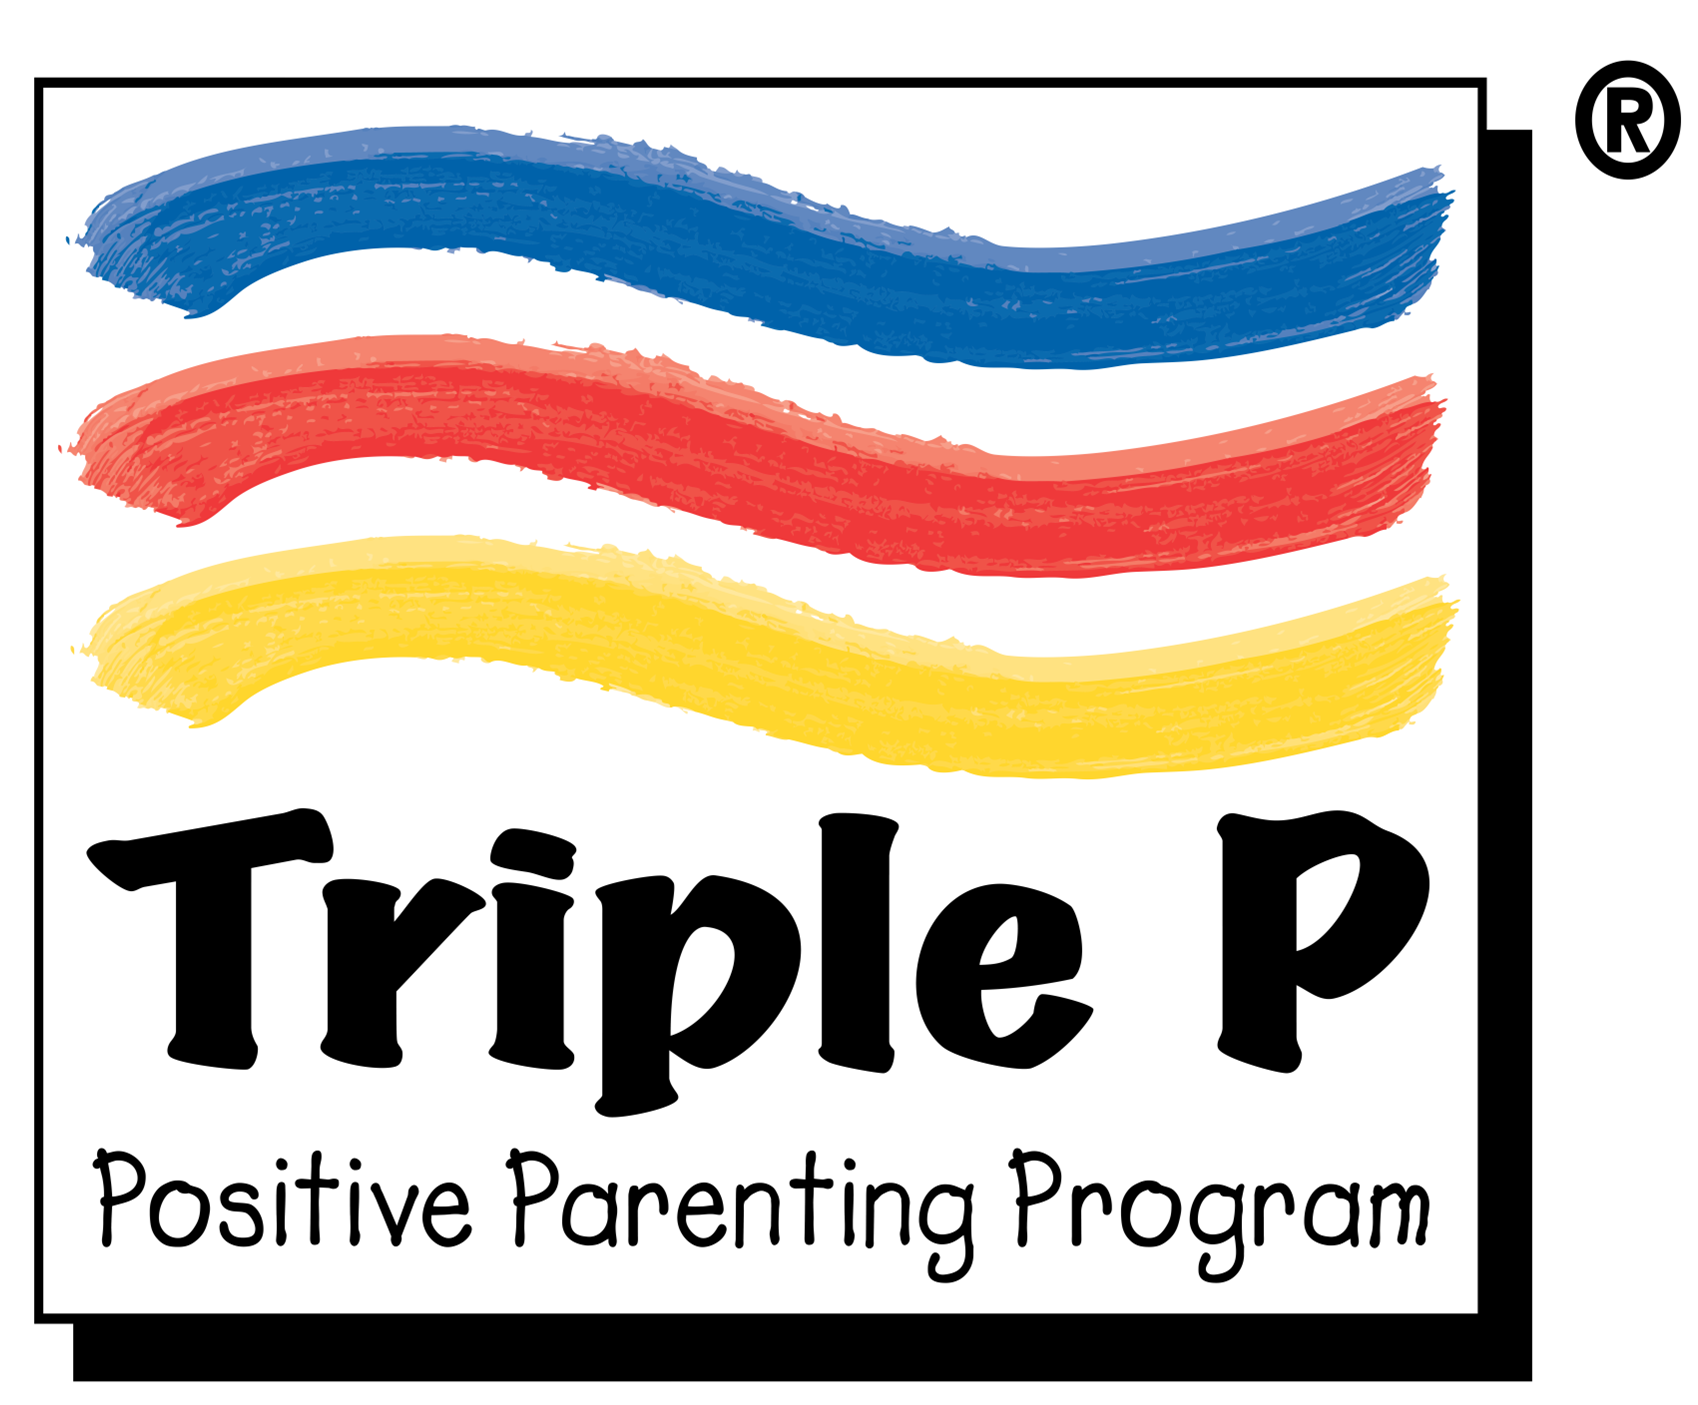 Positive Parenting Program open to parents and children feeling effects of wildfire